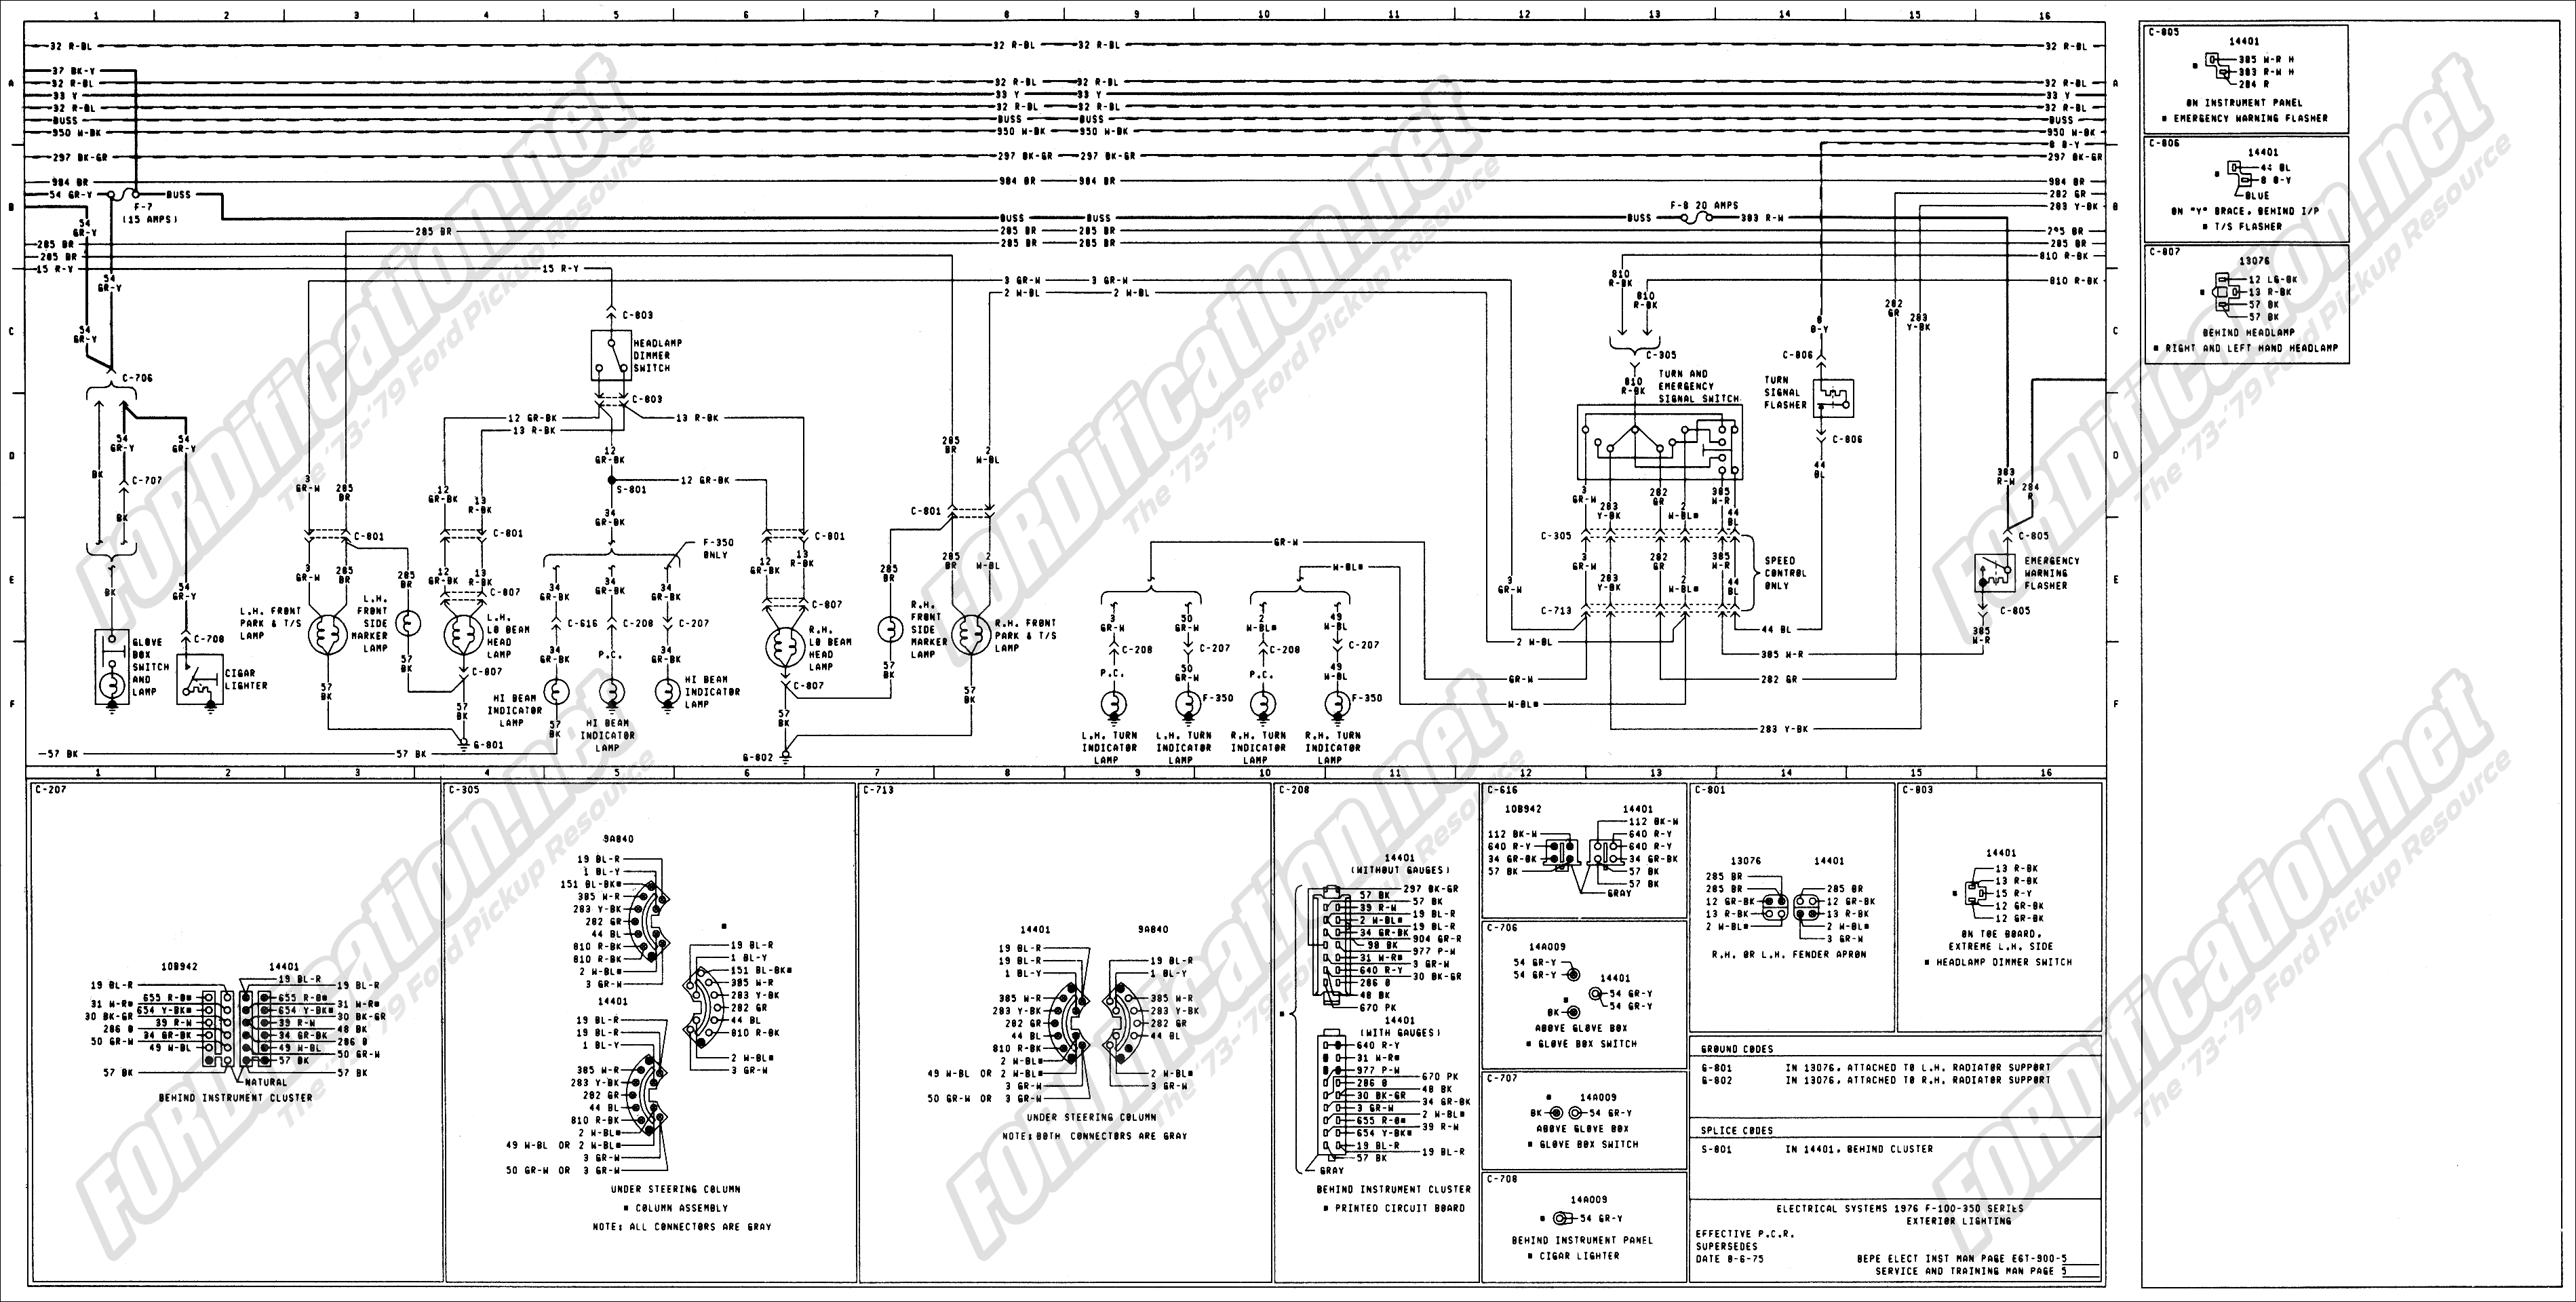 wiring_76master_5of9 1973 1979 ford truck wiring diagrams & schematics fordification net 1975 f250 wiring harness at gsmportal.co